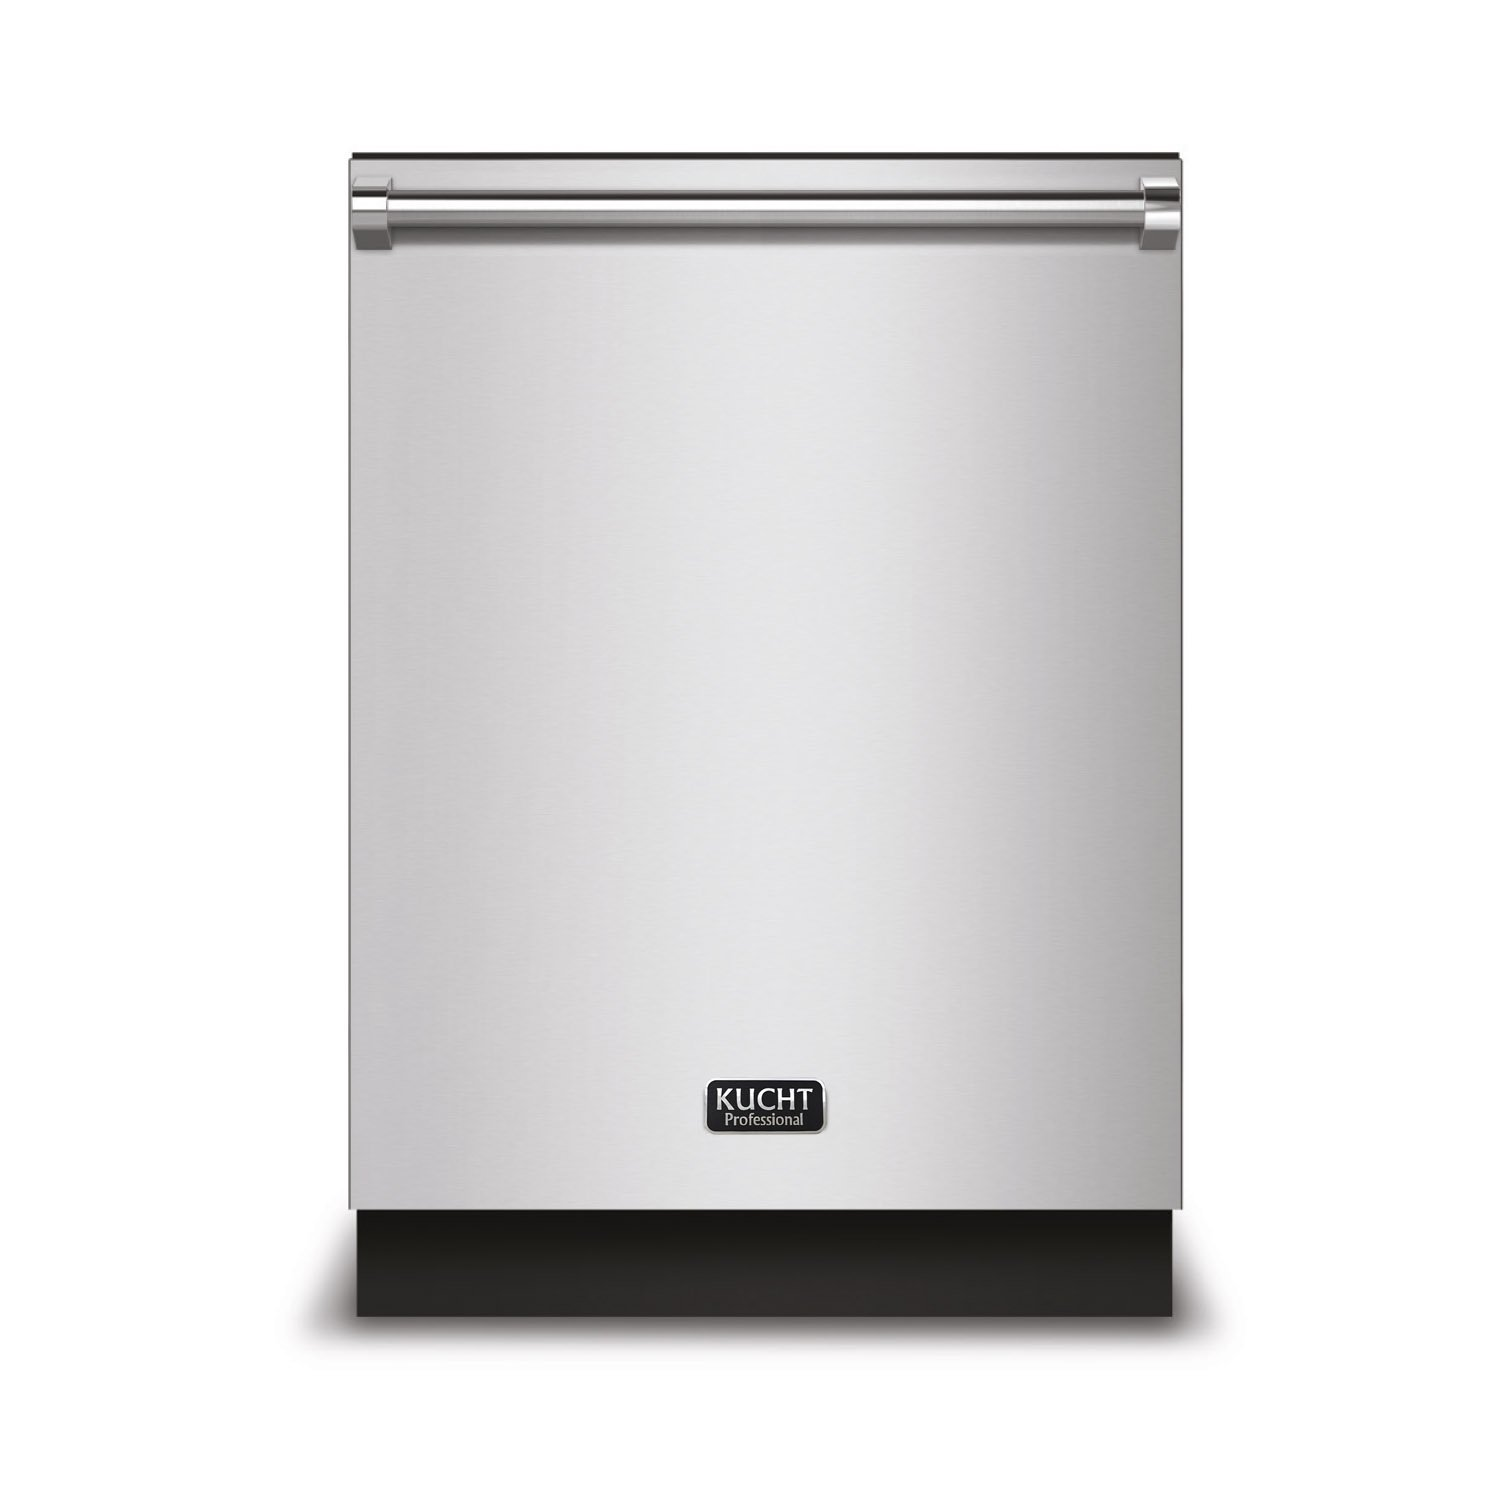 Kucht K6502D Professional 24'' Top Control Dishwasher, Stainless-Steel